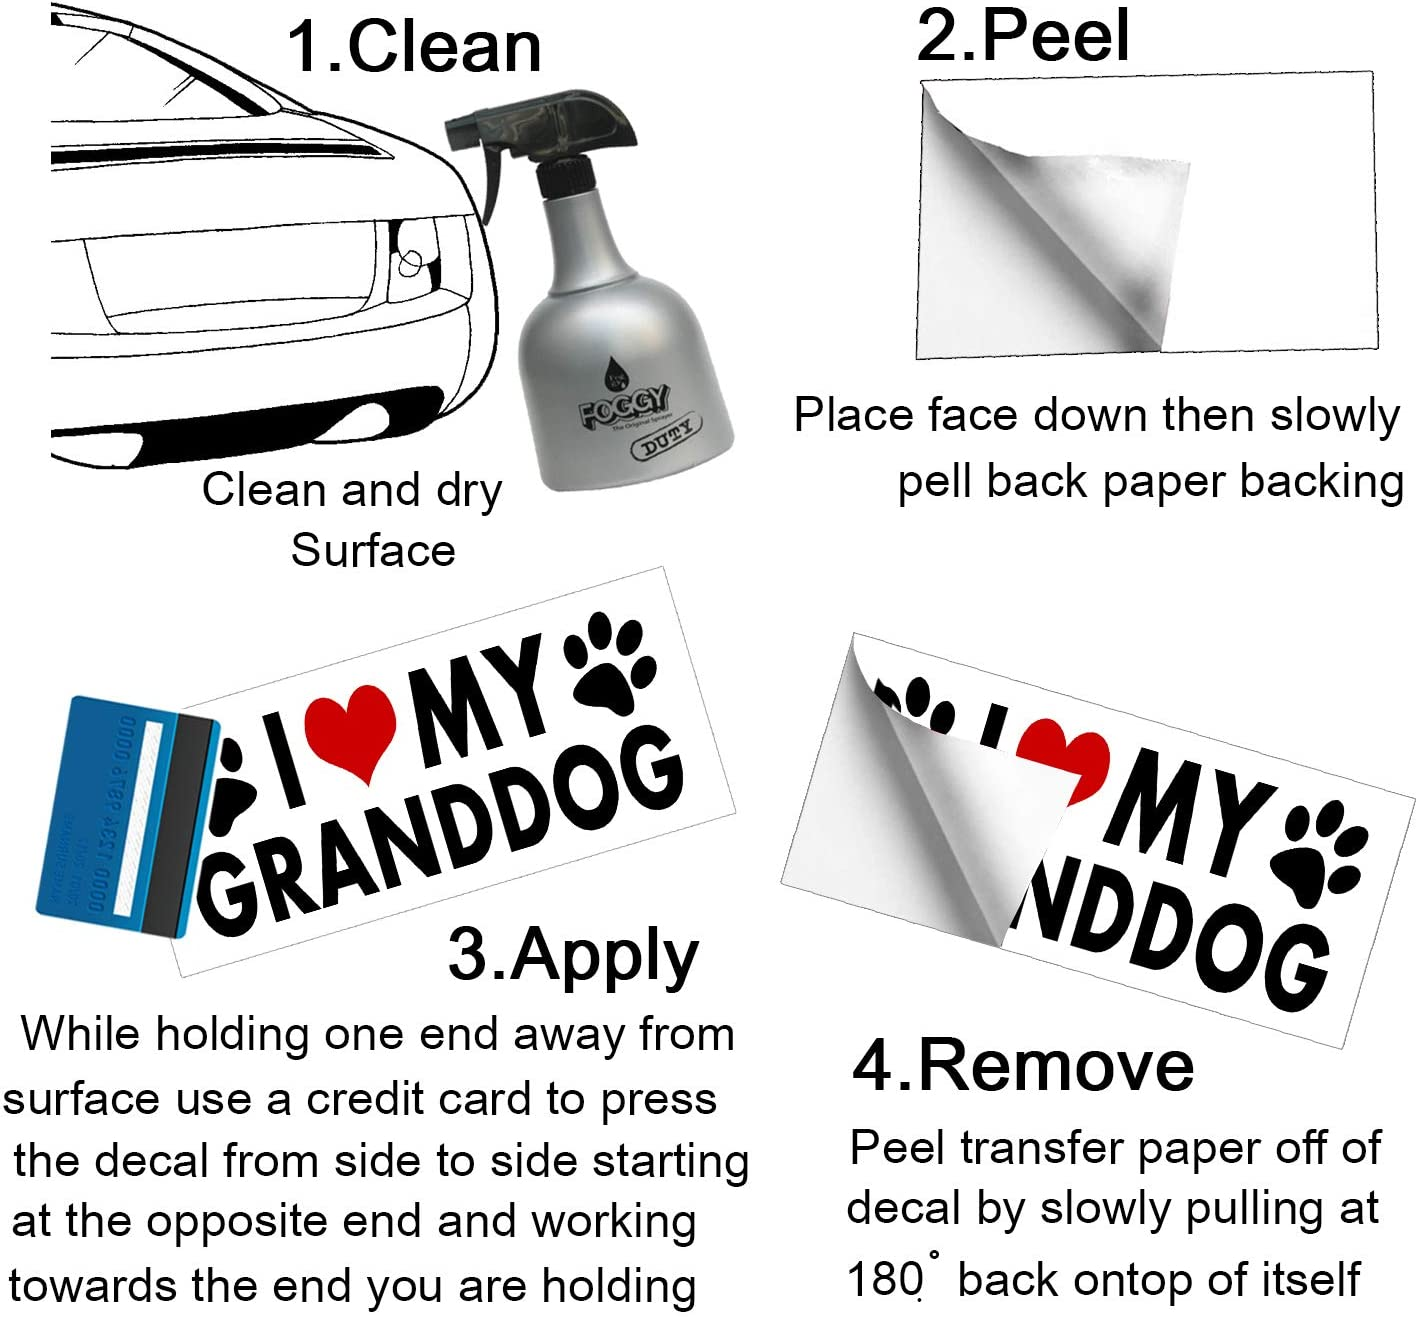 Multisurface Decal Durable and Waterproof Funny Adult Humor Sticker for Cars Trucks RVs Boats Windows Lockers and More WitnyStore I Love Meth Sticker